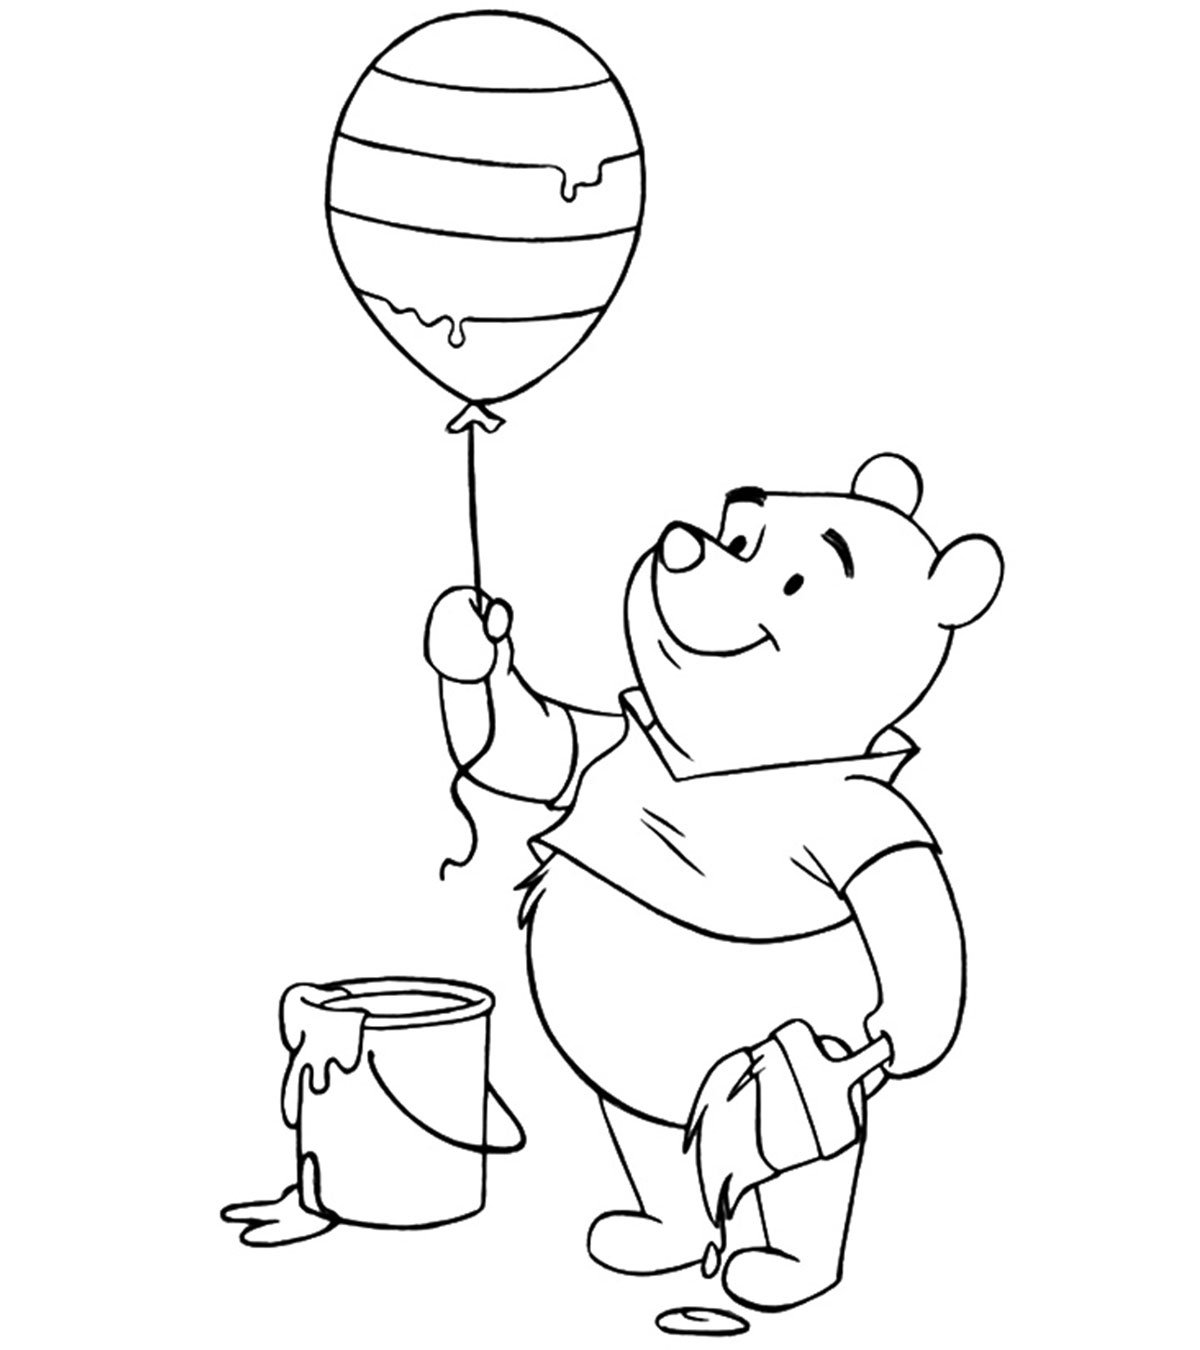 Printable Hot Air Balloon Coloring Pages For Kids Kids adult | 1350x1200